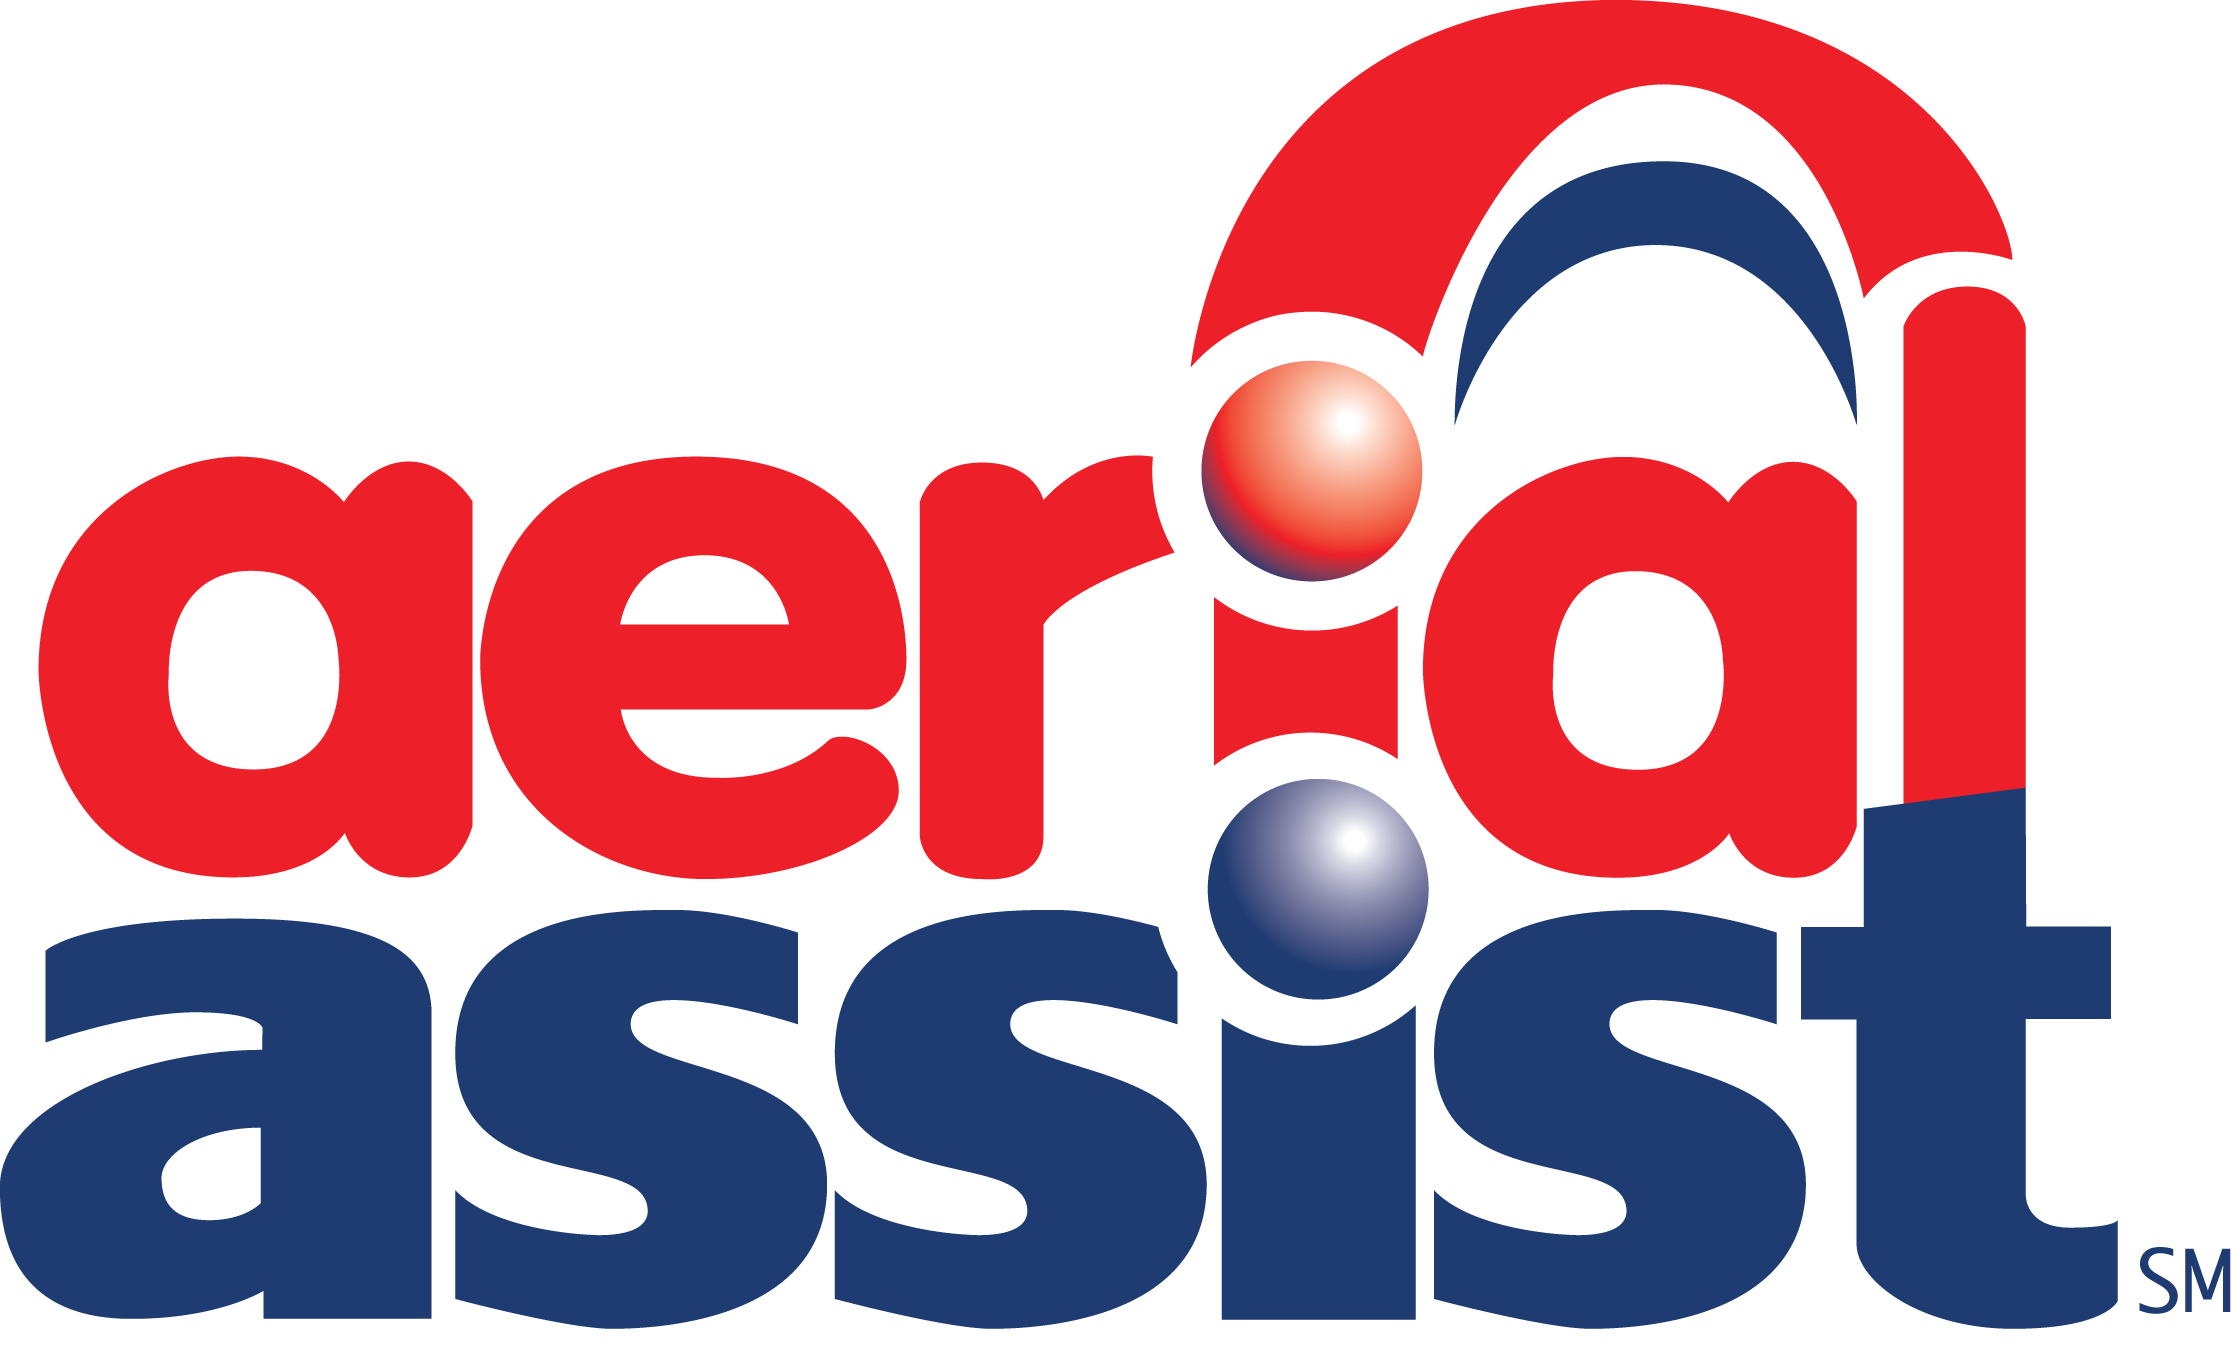 http://cyberknights4911.com/wp-content/uploads/2015/10/aerial_assist_logo_large.png